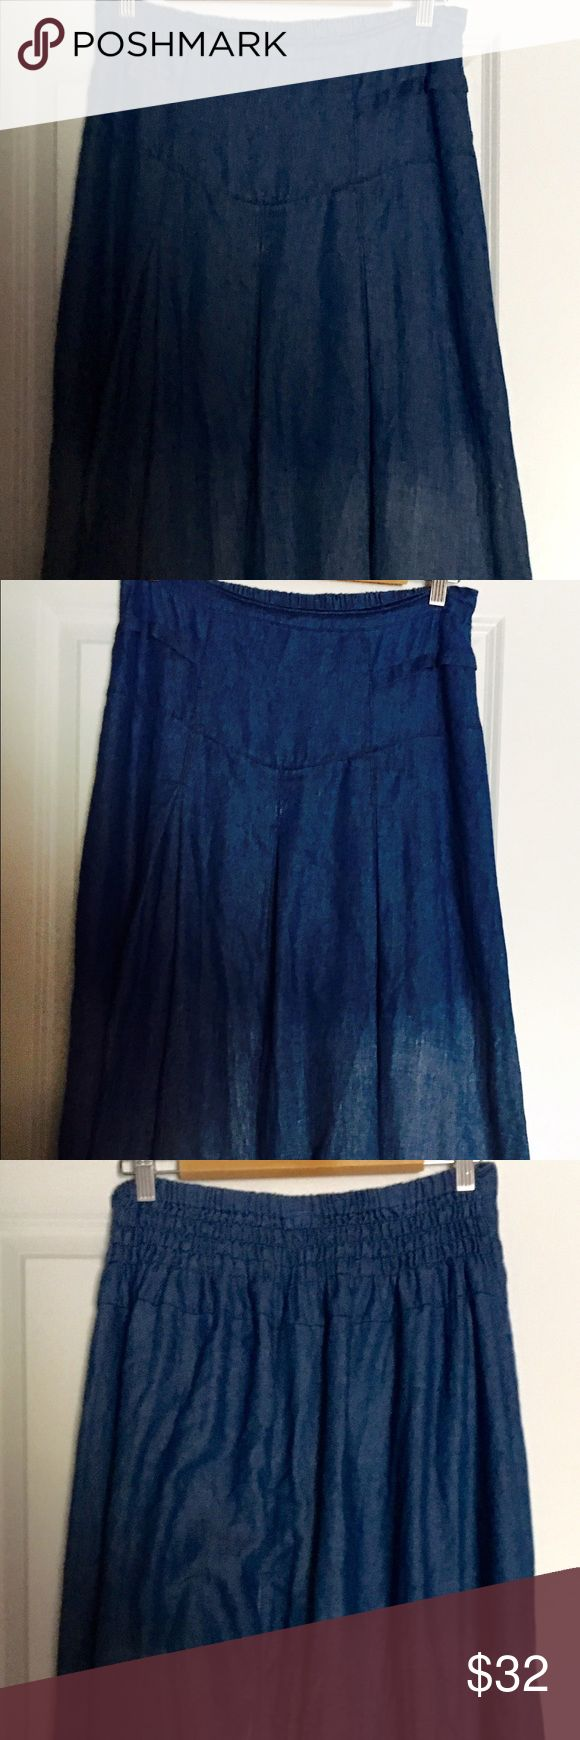 Adorable faded jean prairie skirt sz 14/16 So cute! Cotton material that looks like faded jeans...an adorable prairie skirt with pockets and a 3 flat pleats on front and back - super figure flattering!!! Very generous size L, more like a true 14/16. Skirts Maxi